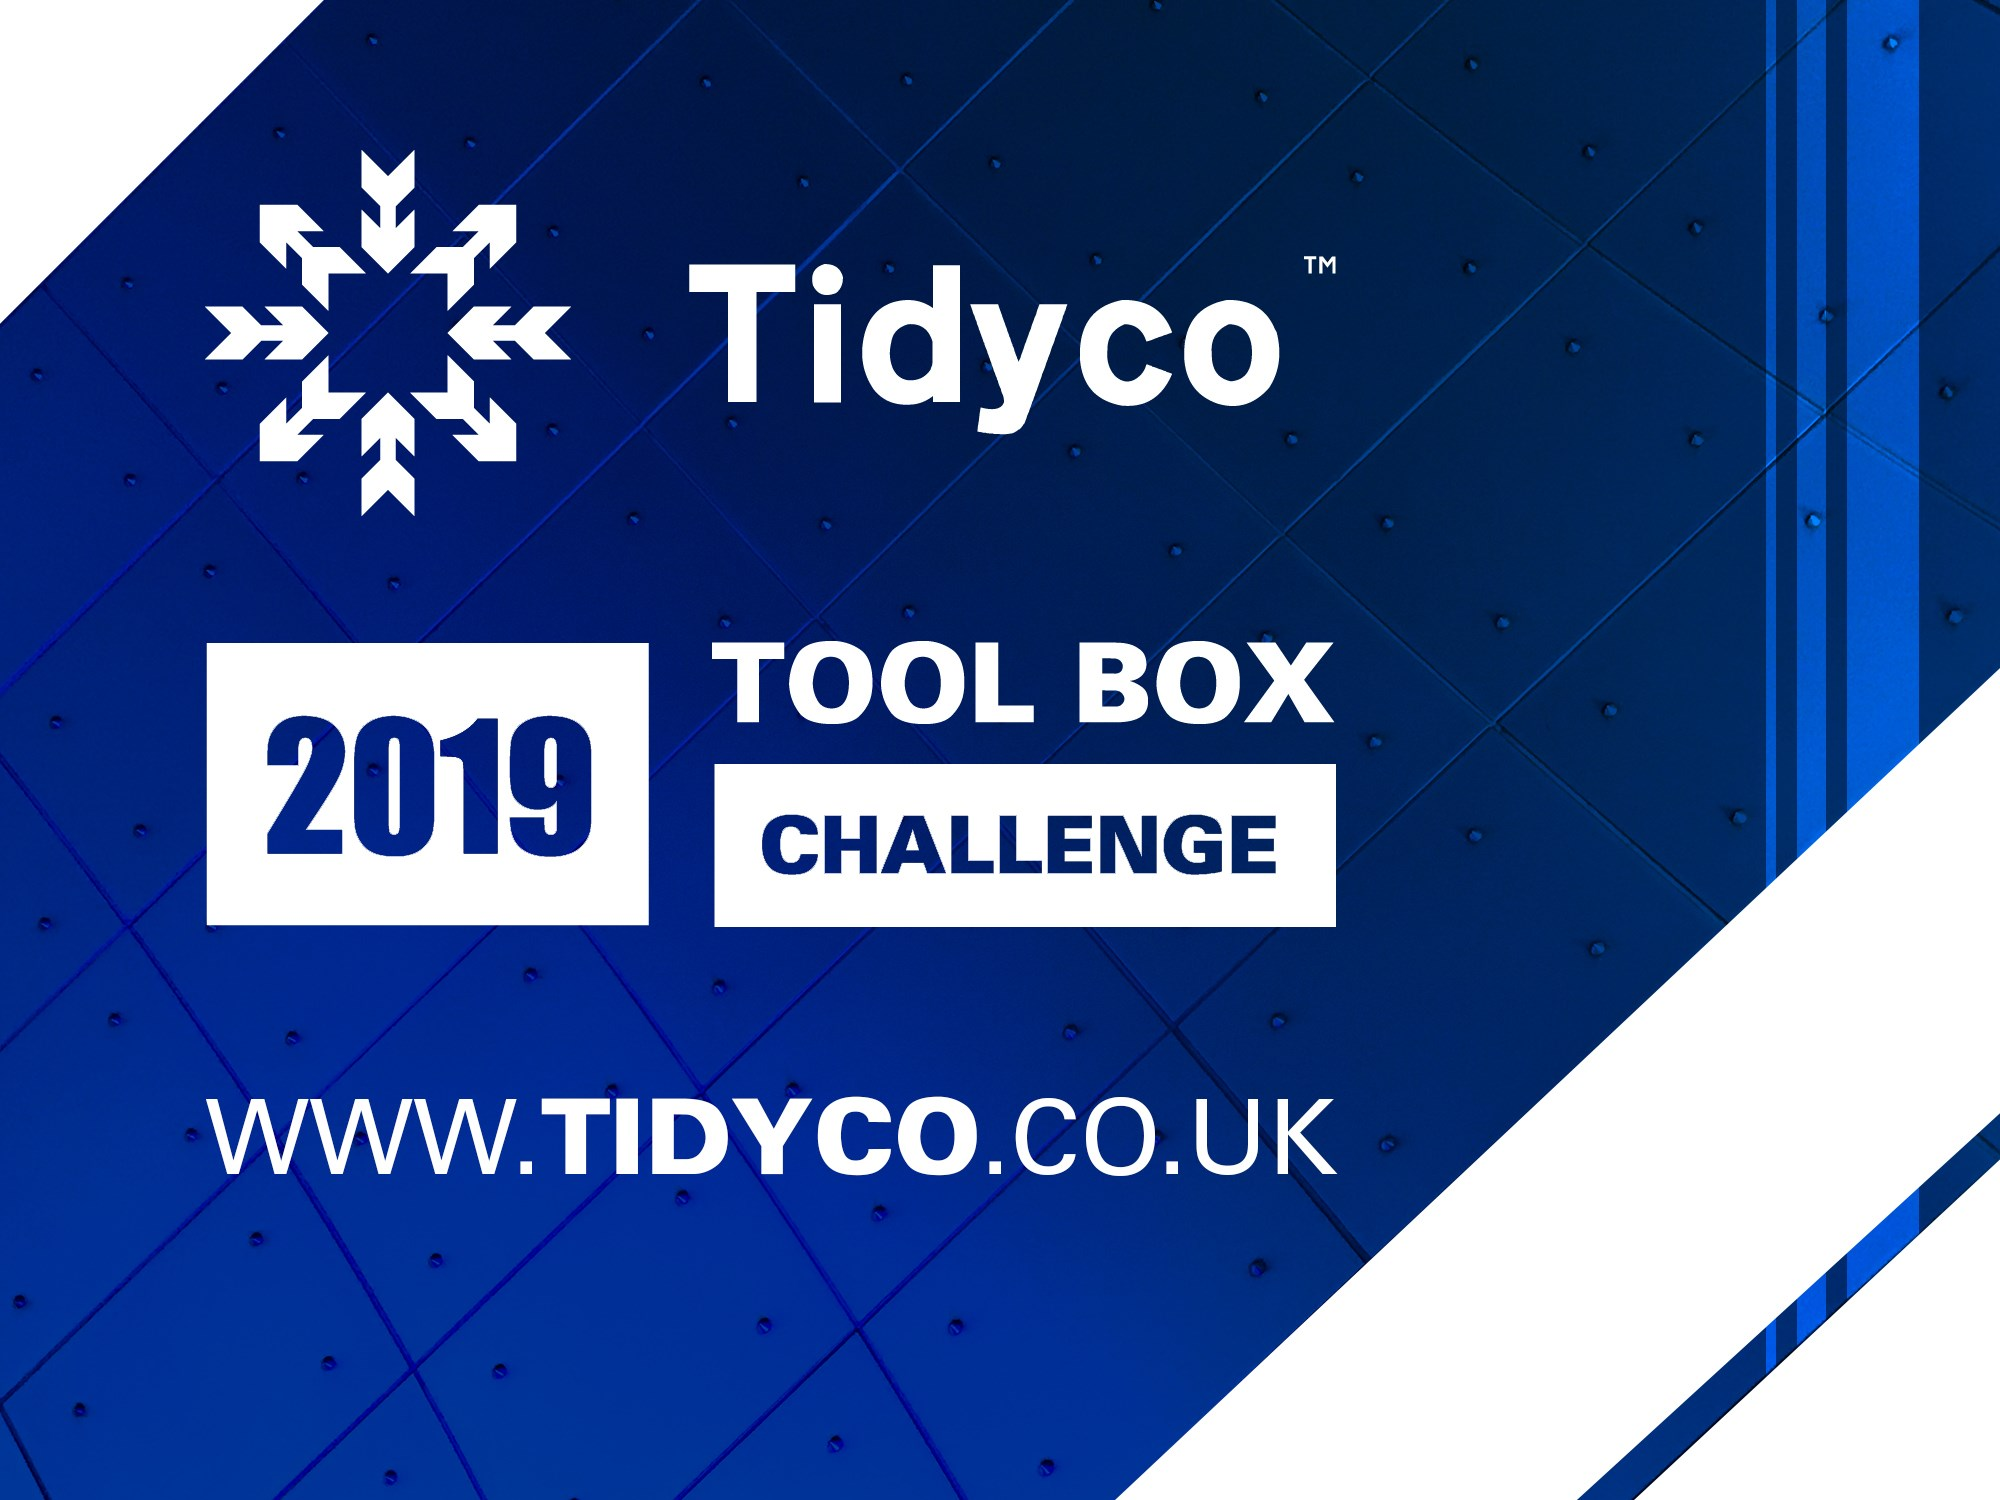 The 2019 Tidyco Toolbox Challenge